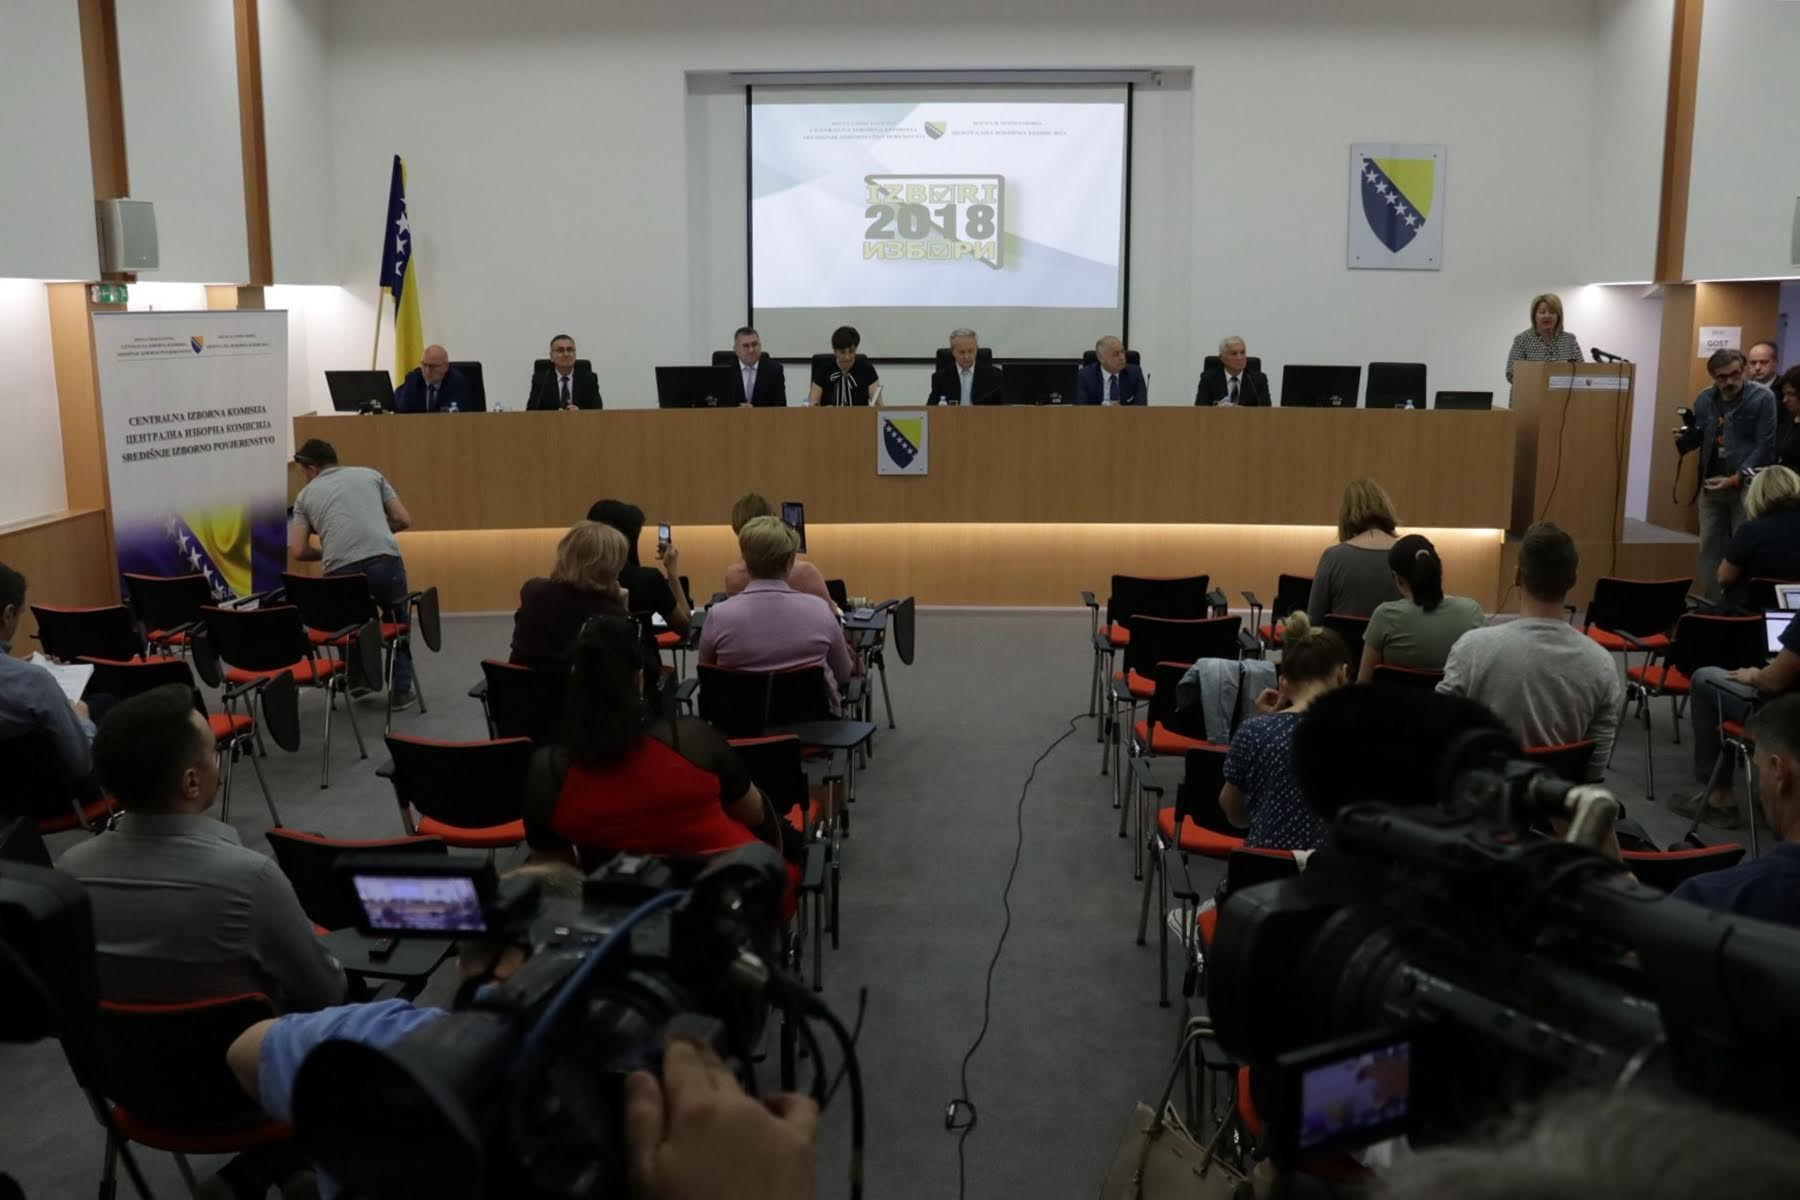 The CEC BiH announced the date of the 2018 General Elections